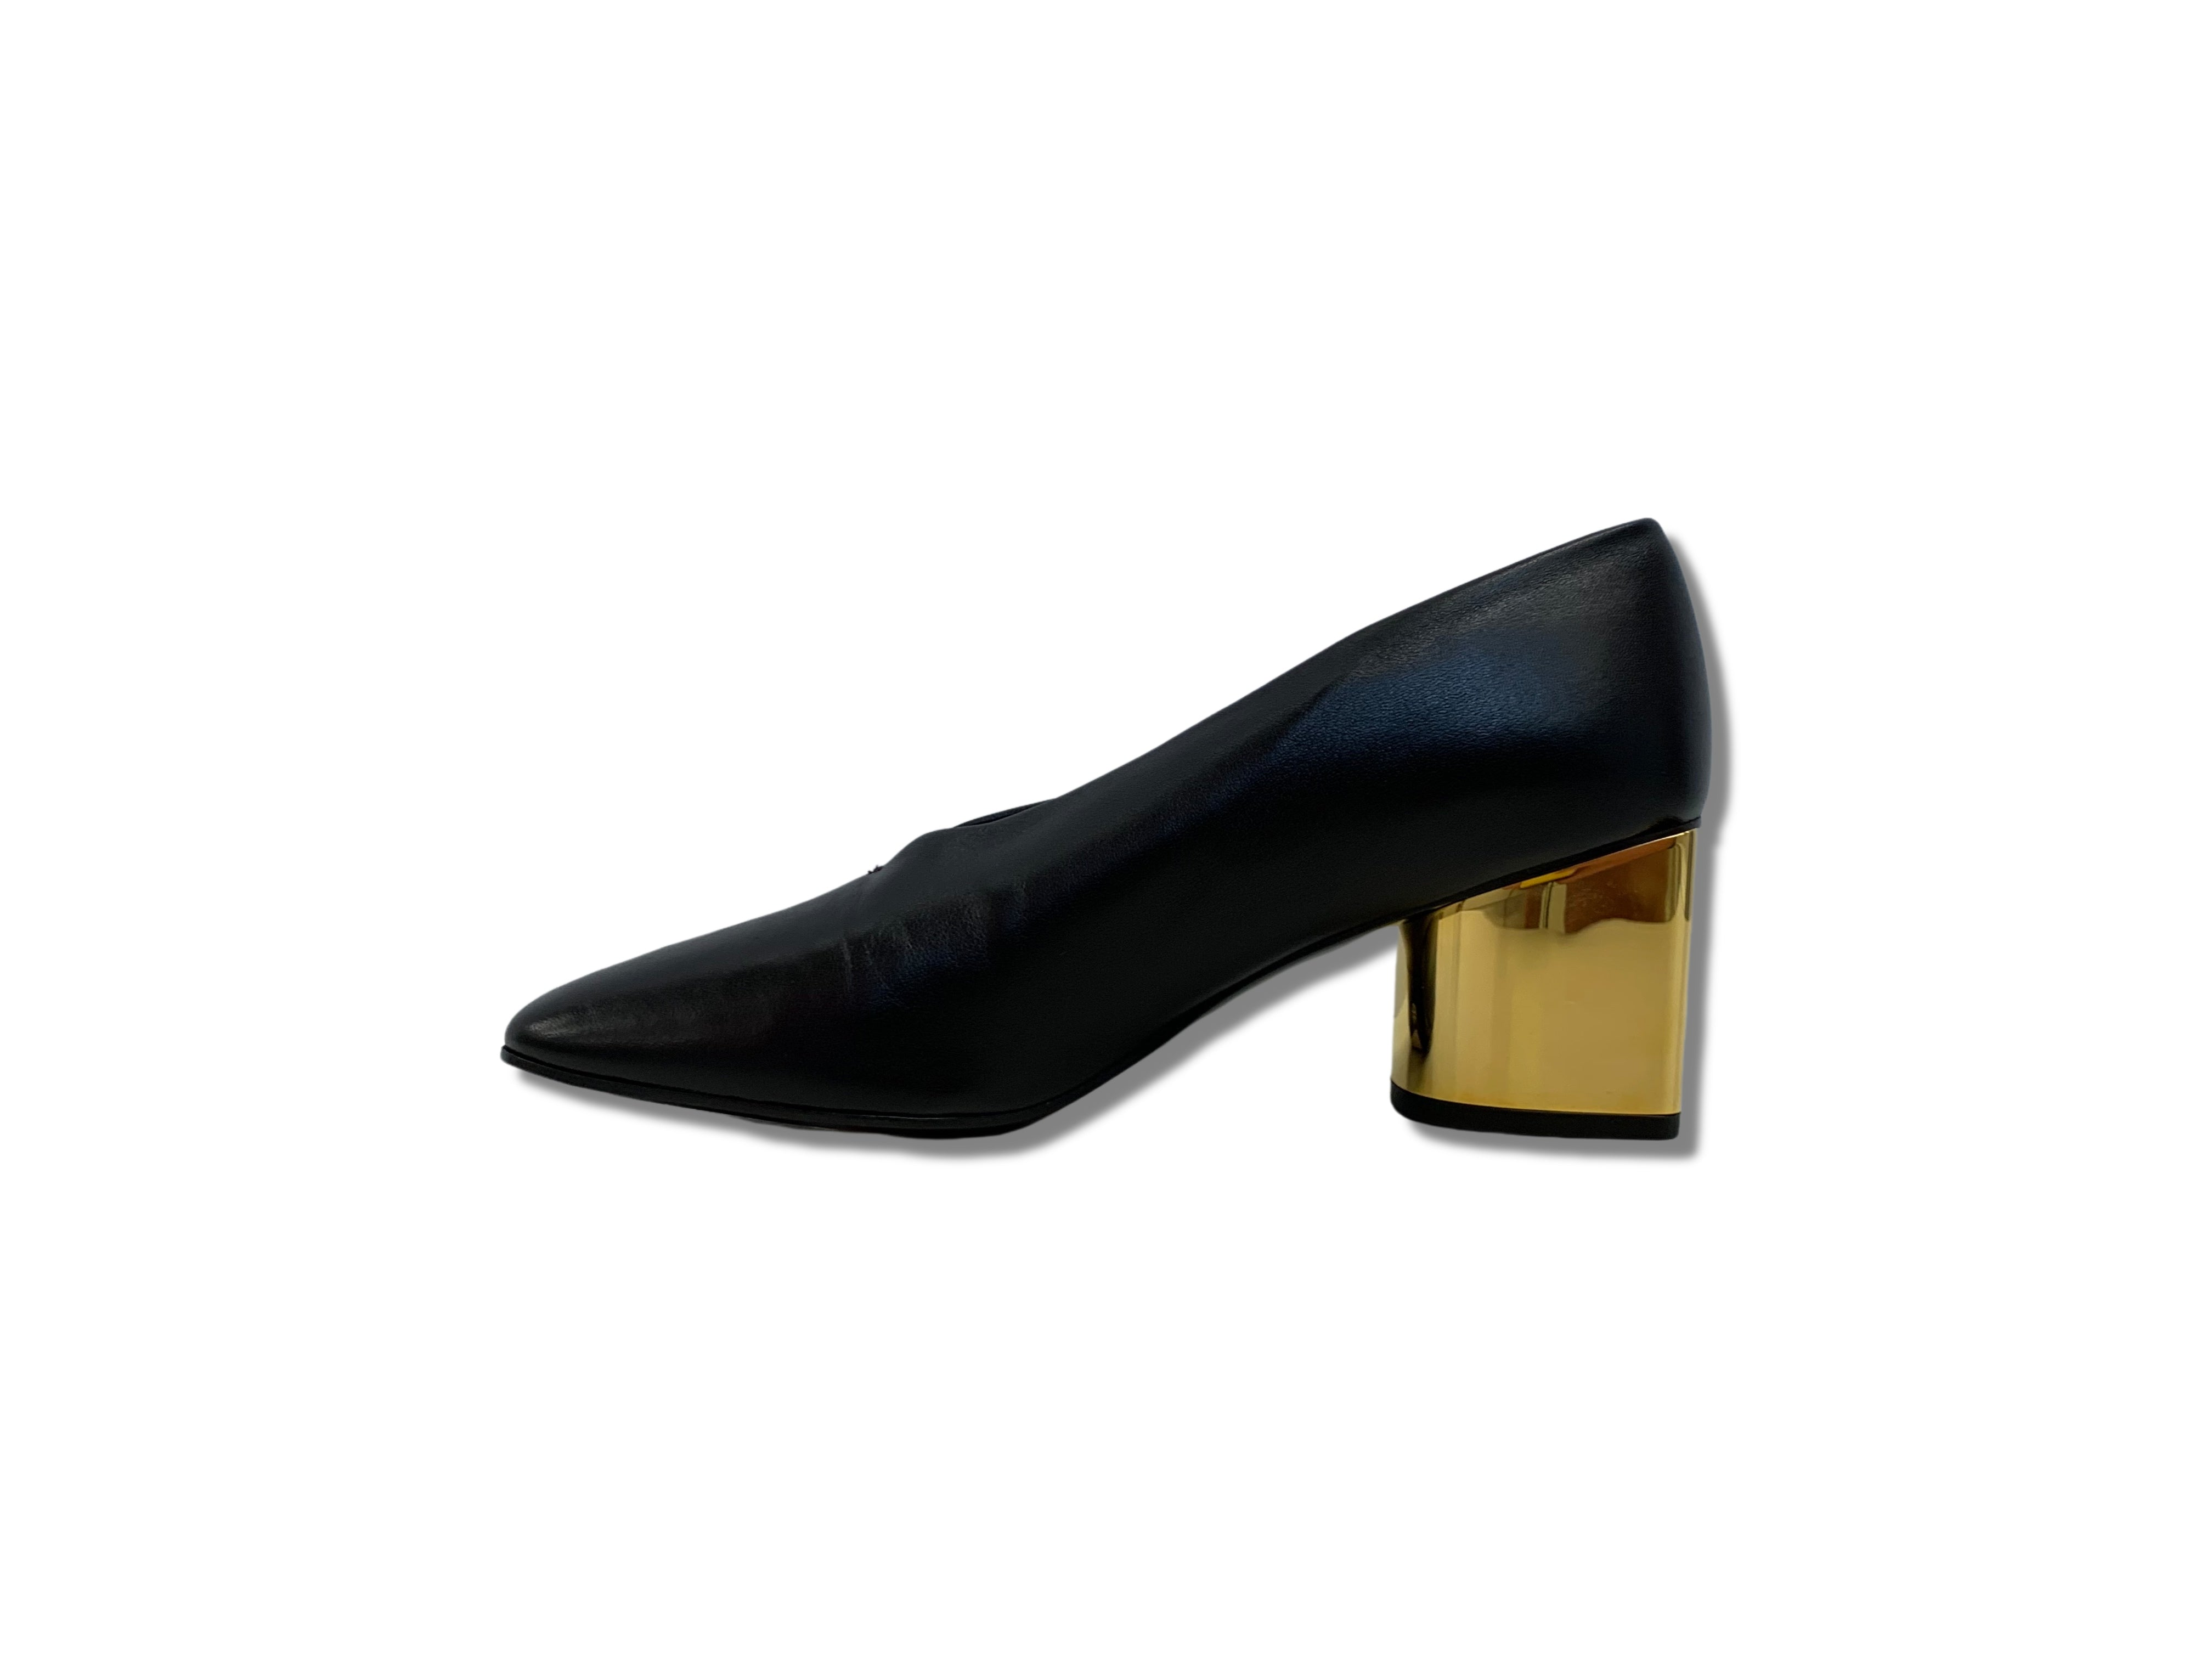 Proenza Black and Gold Heels - Chic Thrills